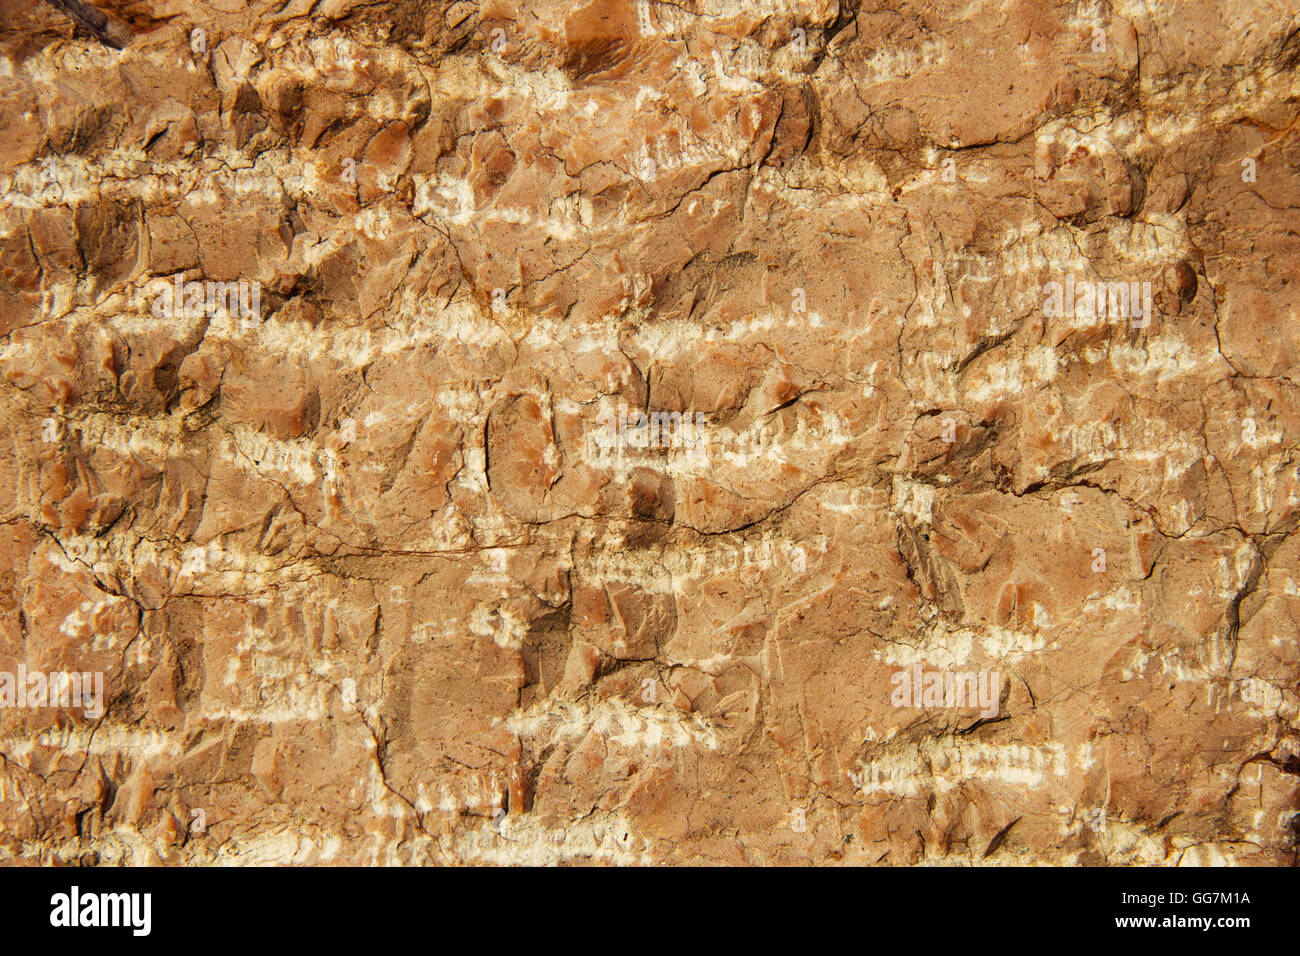 Stone surface as a background Stock Photo